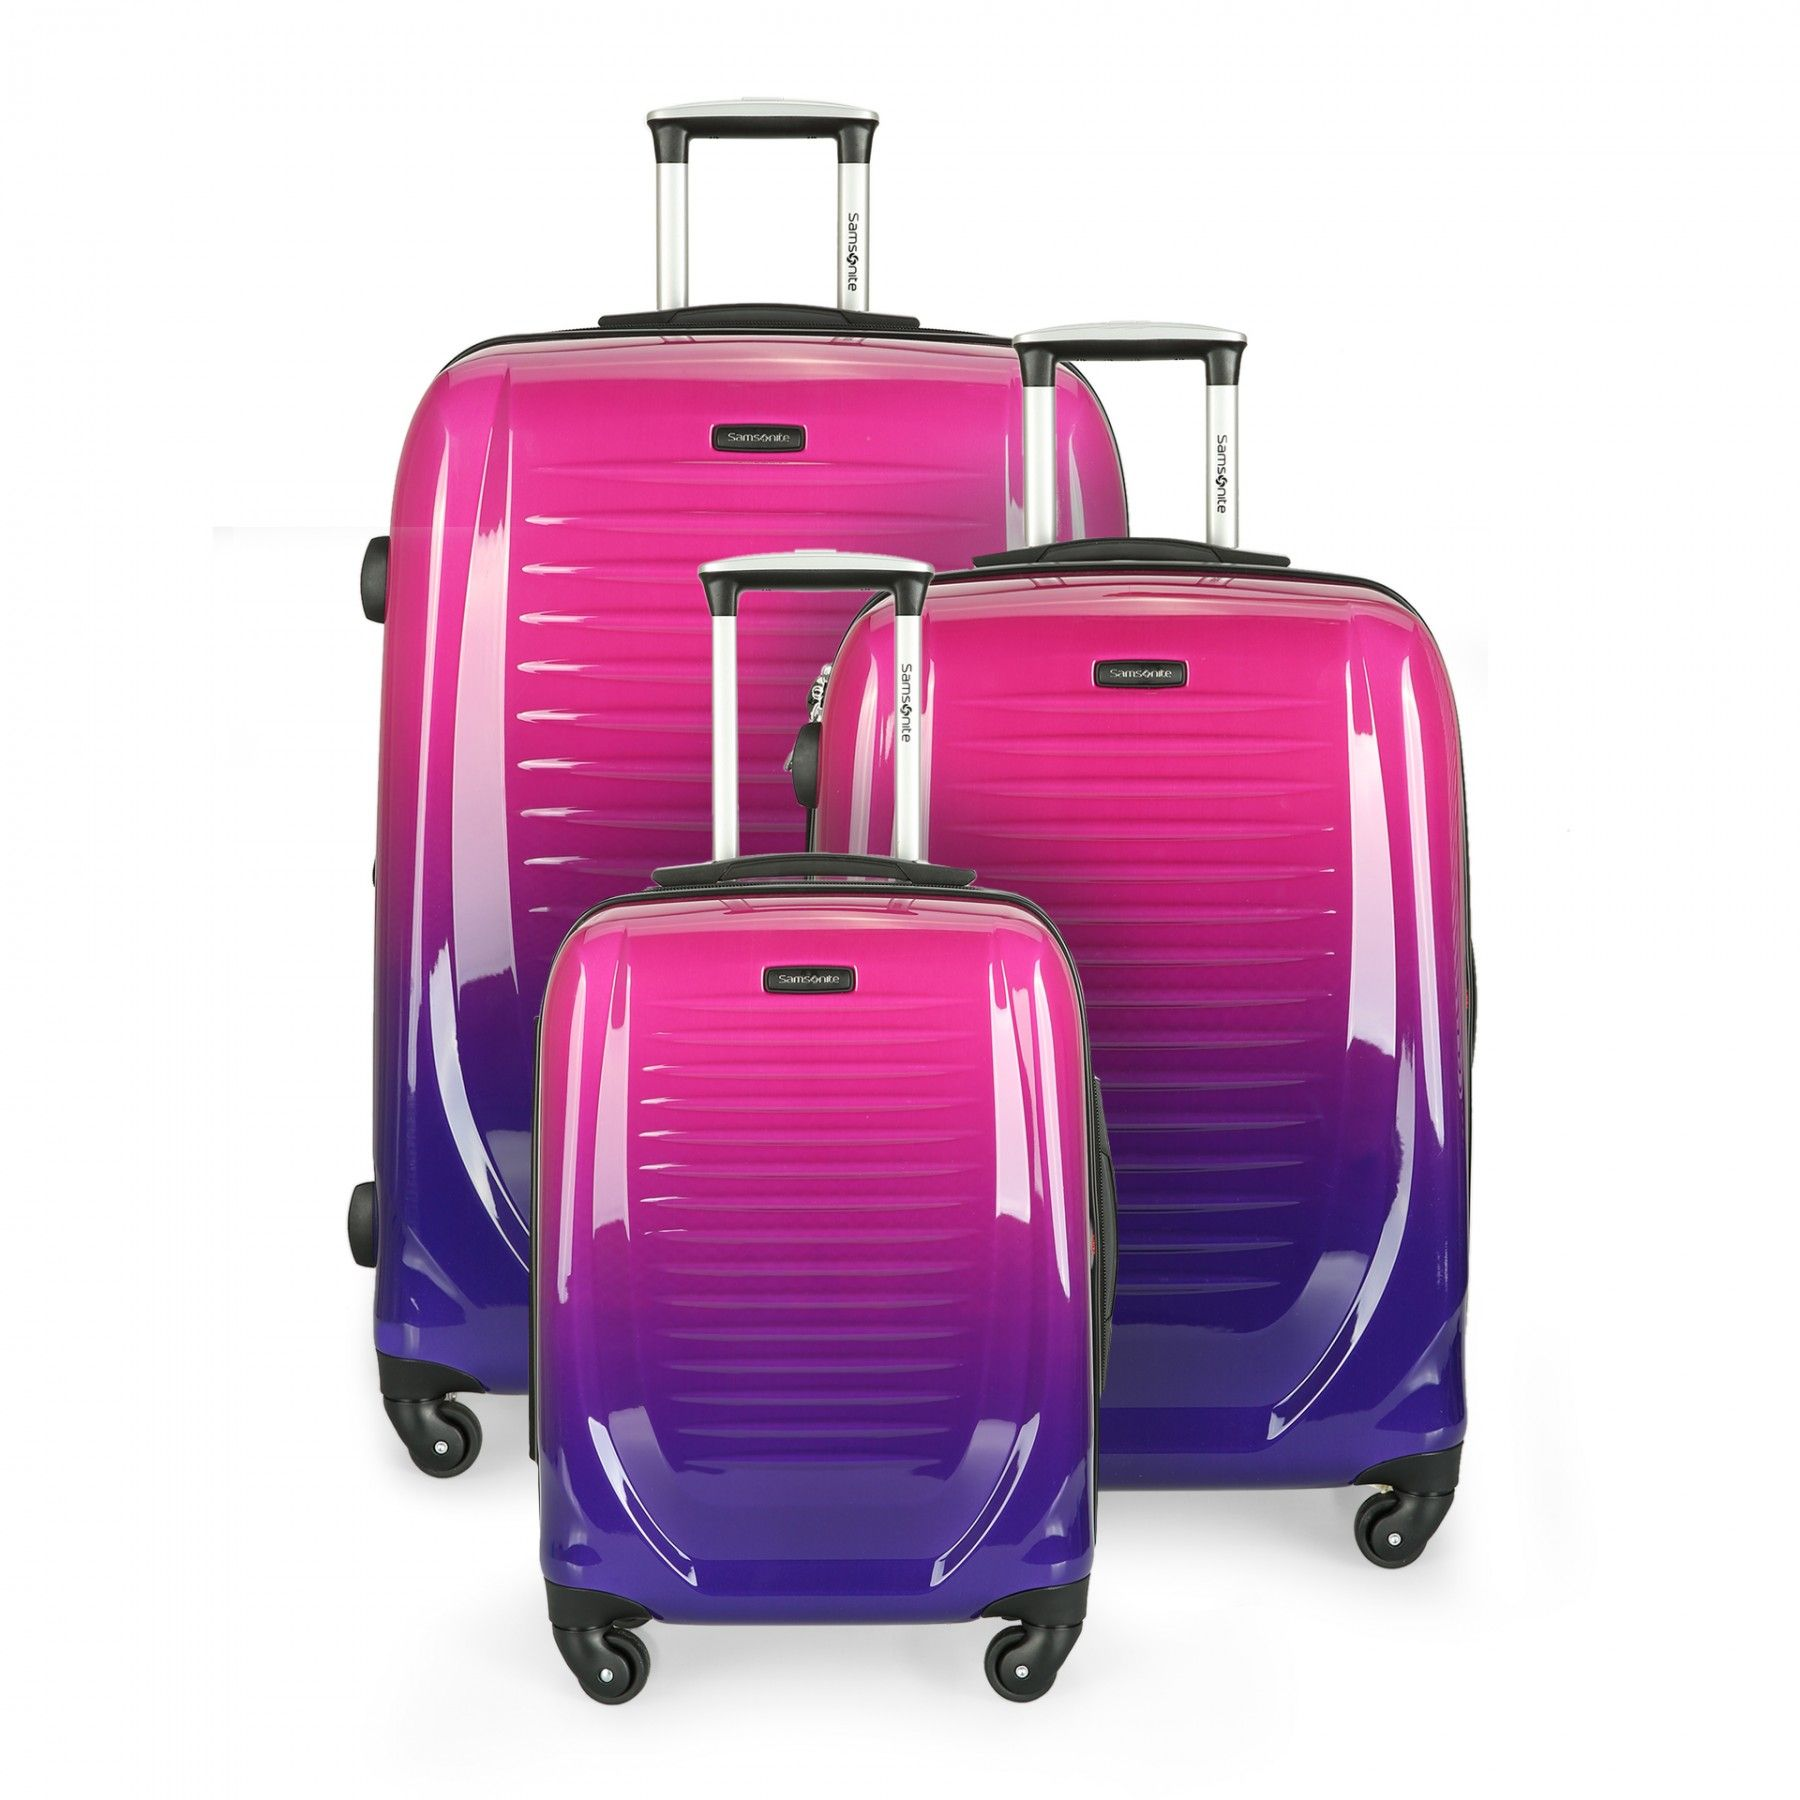 Samsonite Hardside Luggage Set | Spring Forward | Pinterest ...